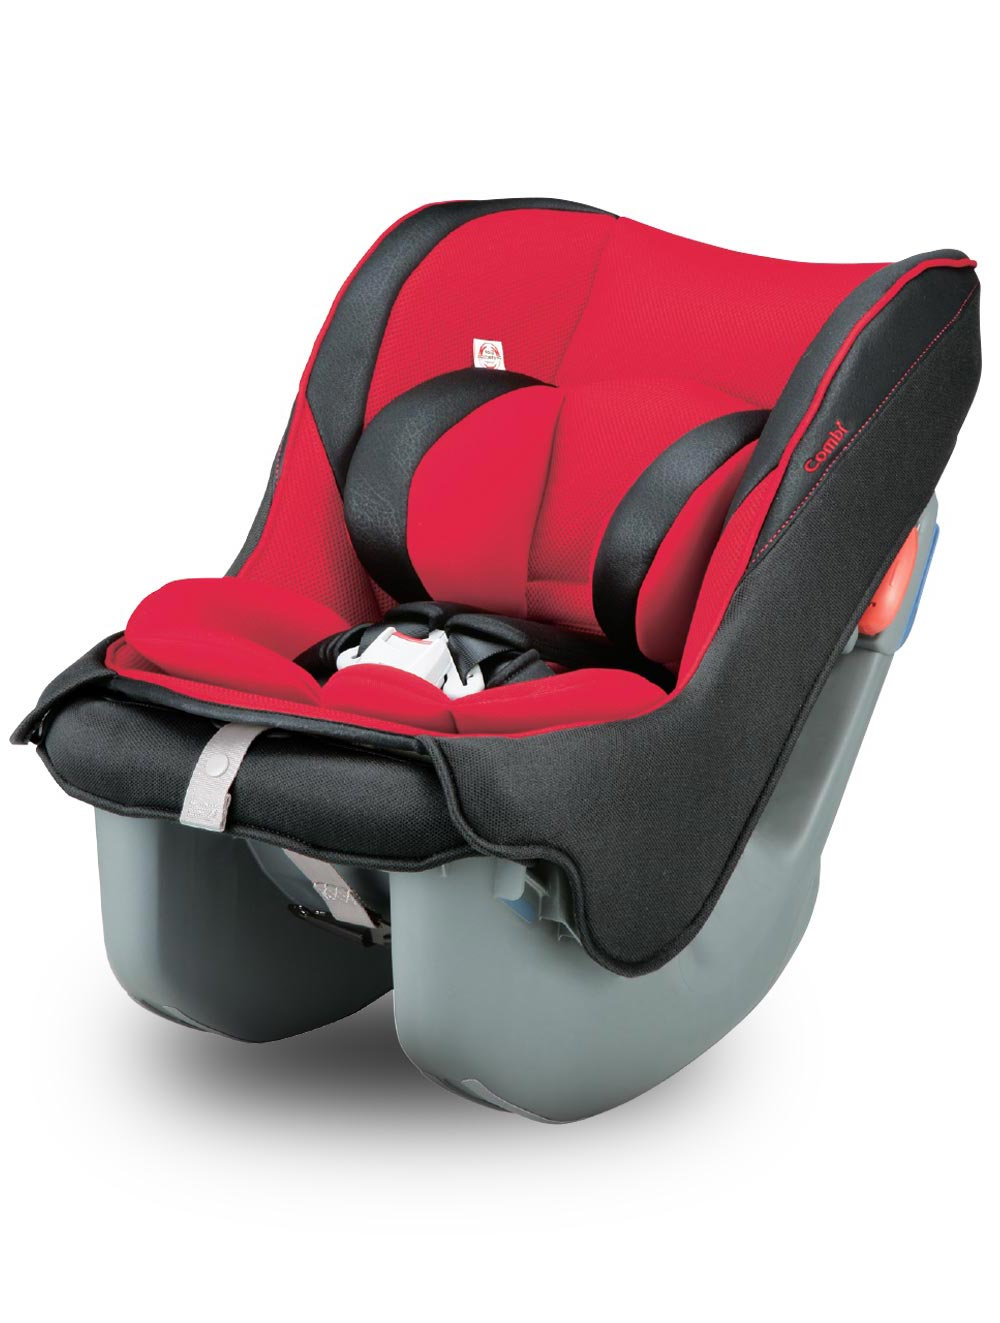 Combi Coccoro EG UB Car Seat (Red) (end 6/4/2019 5:55 PM)